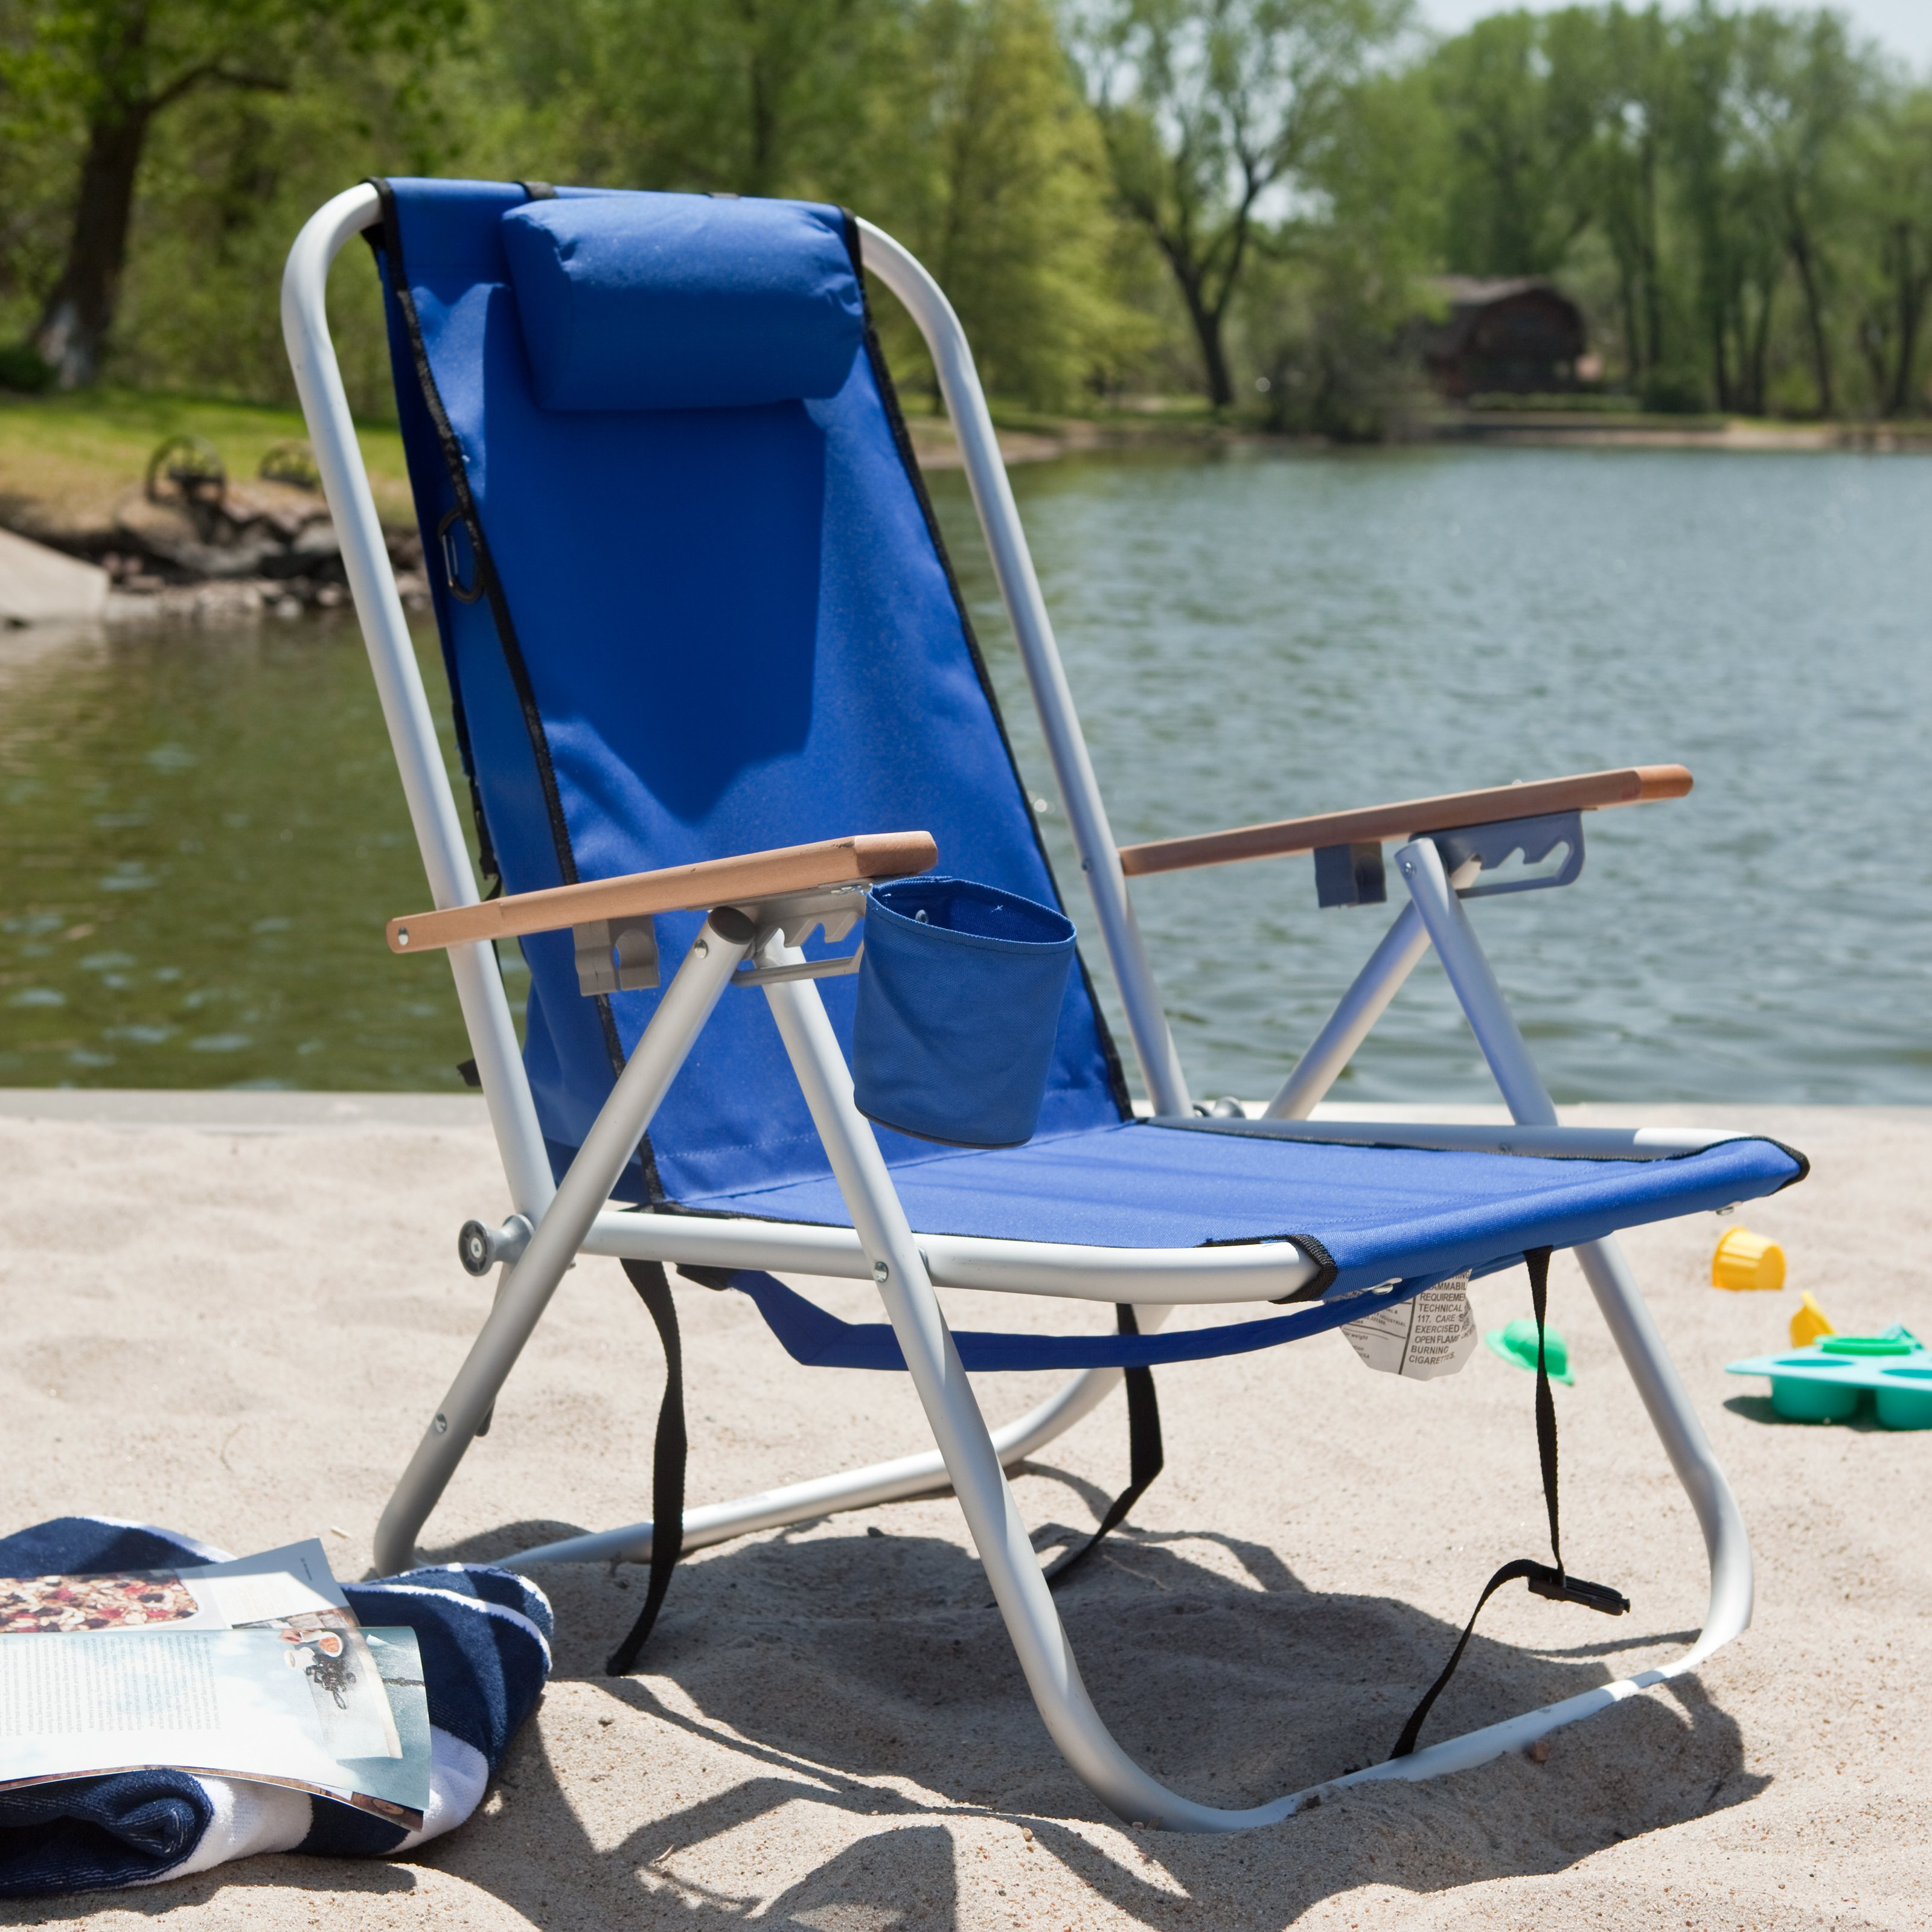 Terrific Zimtown Backpack Beach Chair Folding Portable Chair Blue Solid Construction Camping New Beatyapartments Chair Design Images Beatyapartmentscom